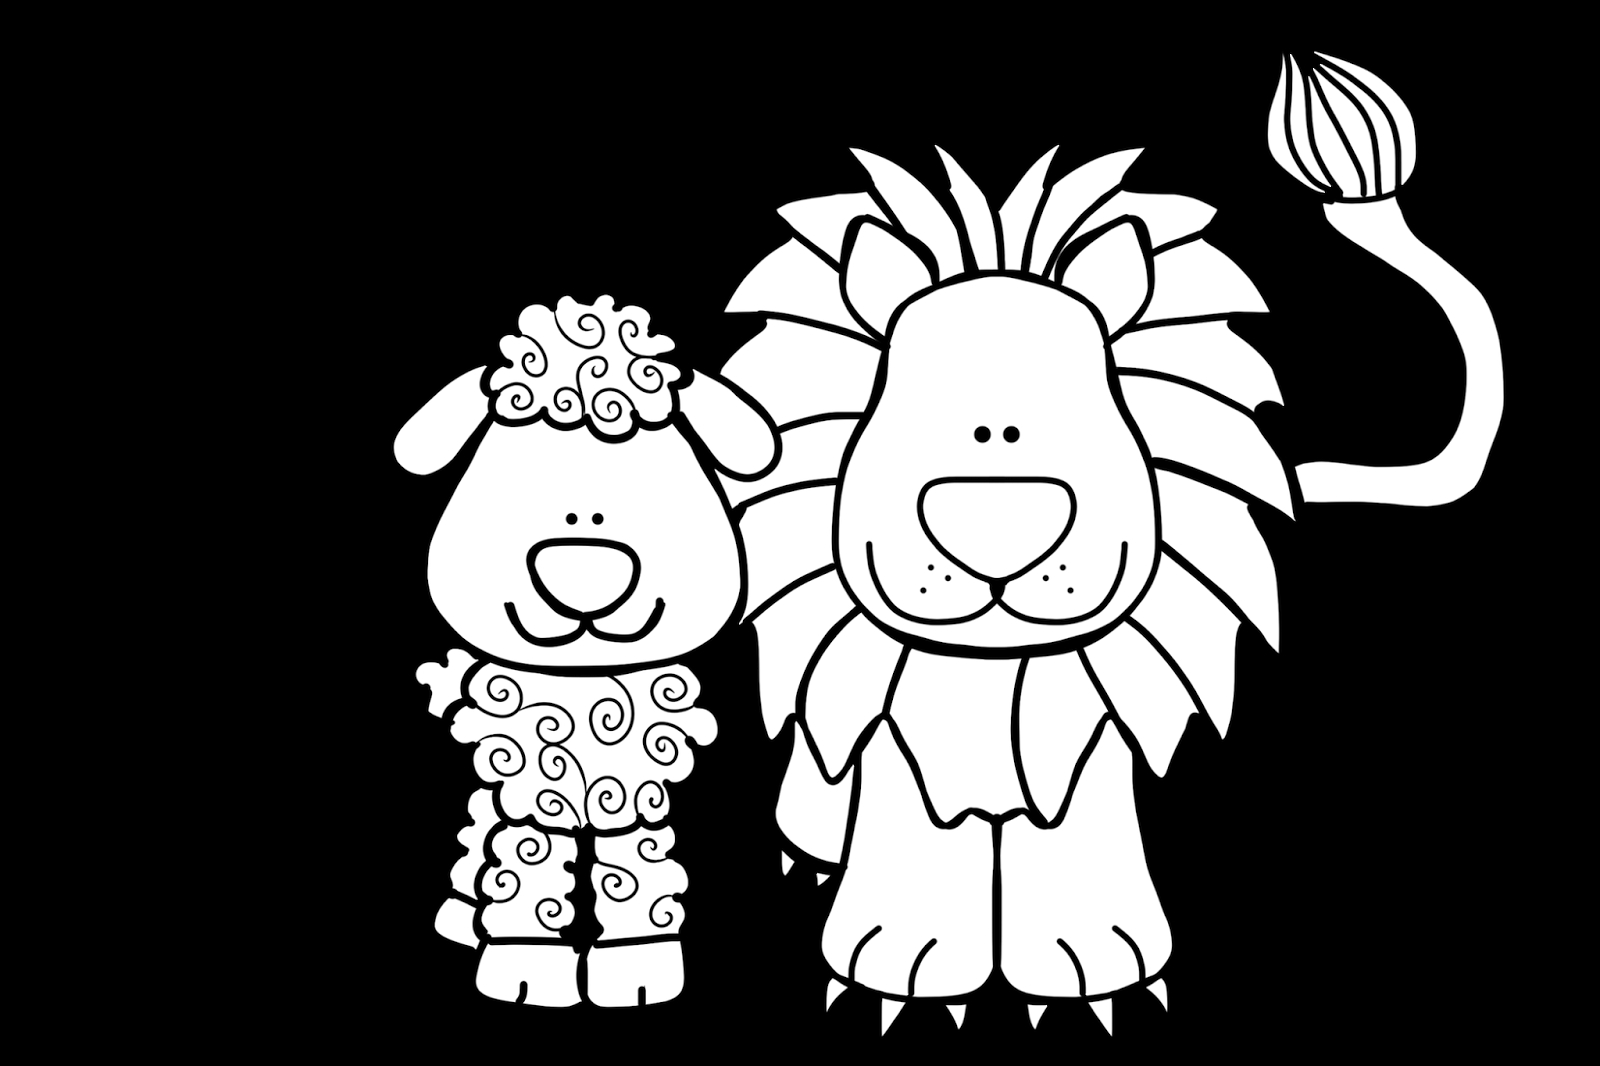 lion and lamb coloring page lion and lamb coloring pages lion and lamb abc coloring lion lamb and coloring page